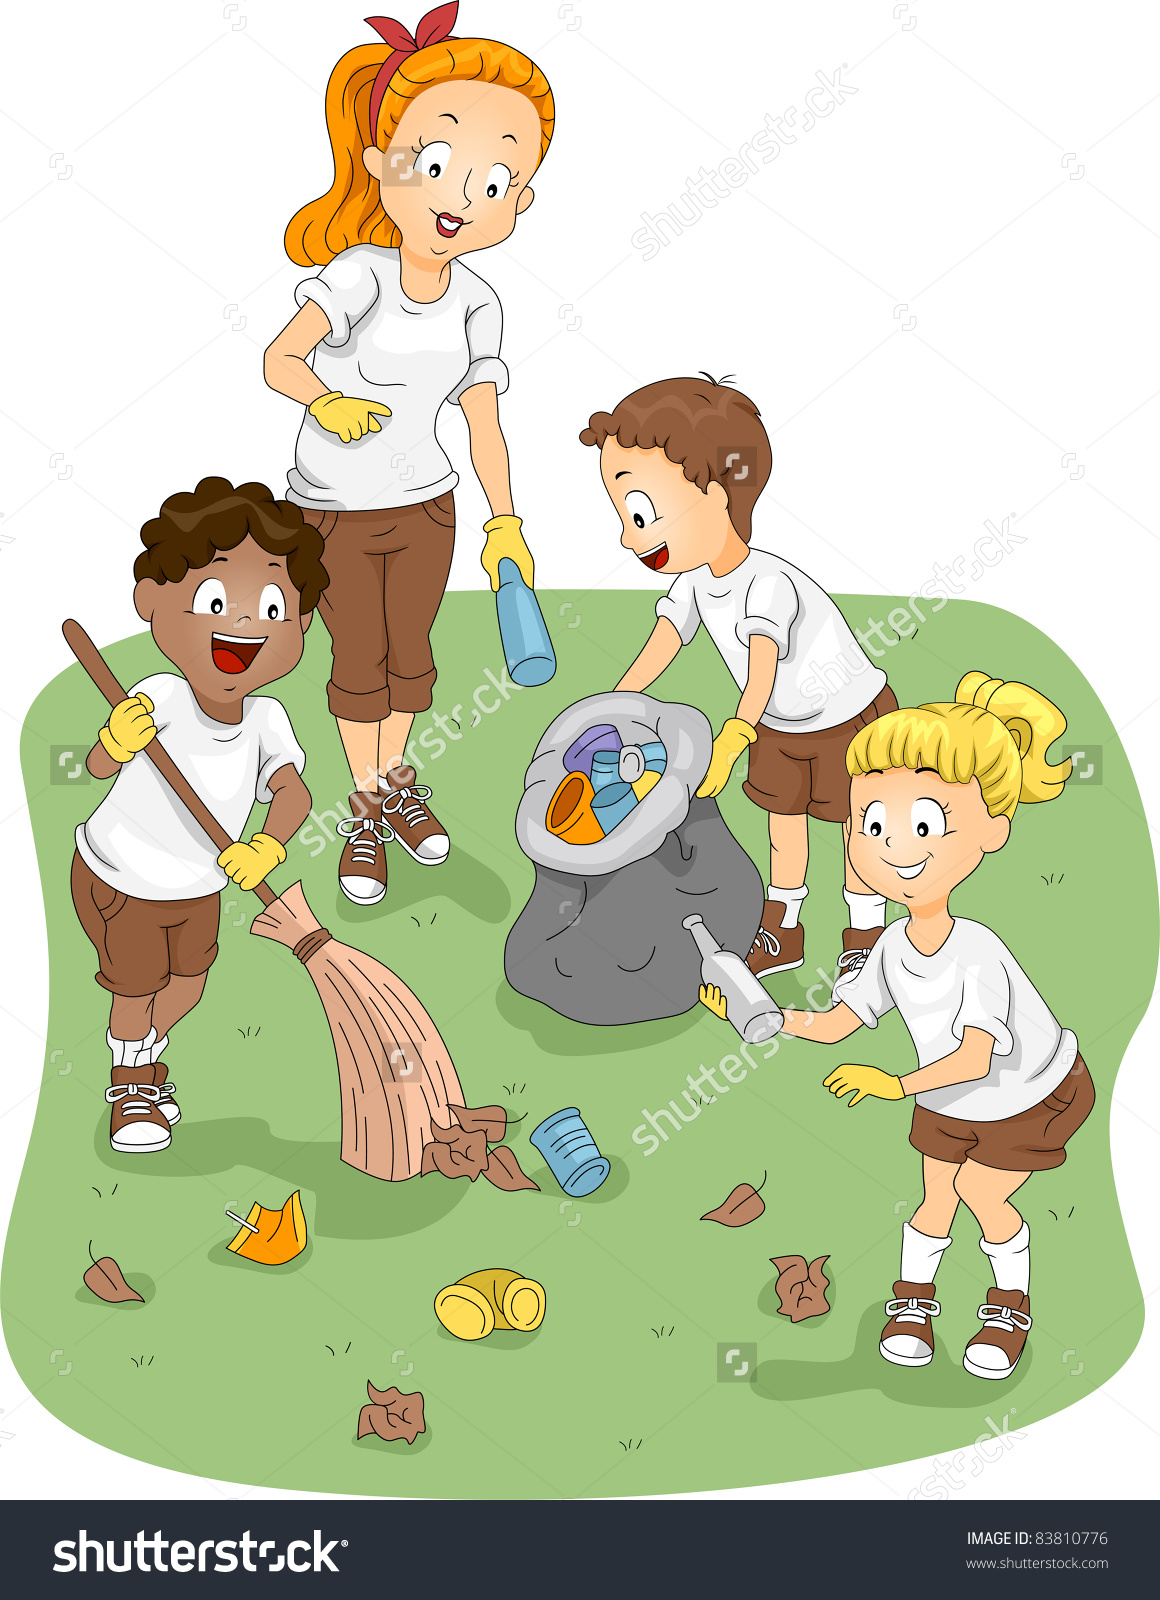 Kids Cleaning The Environment Clipart.